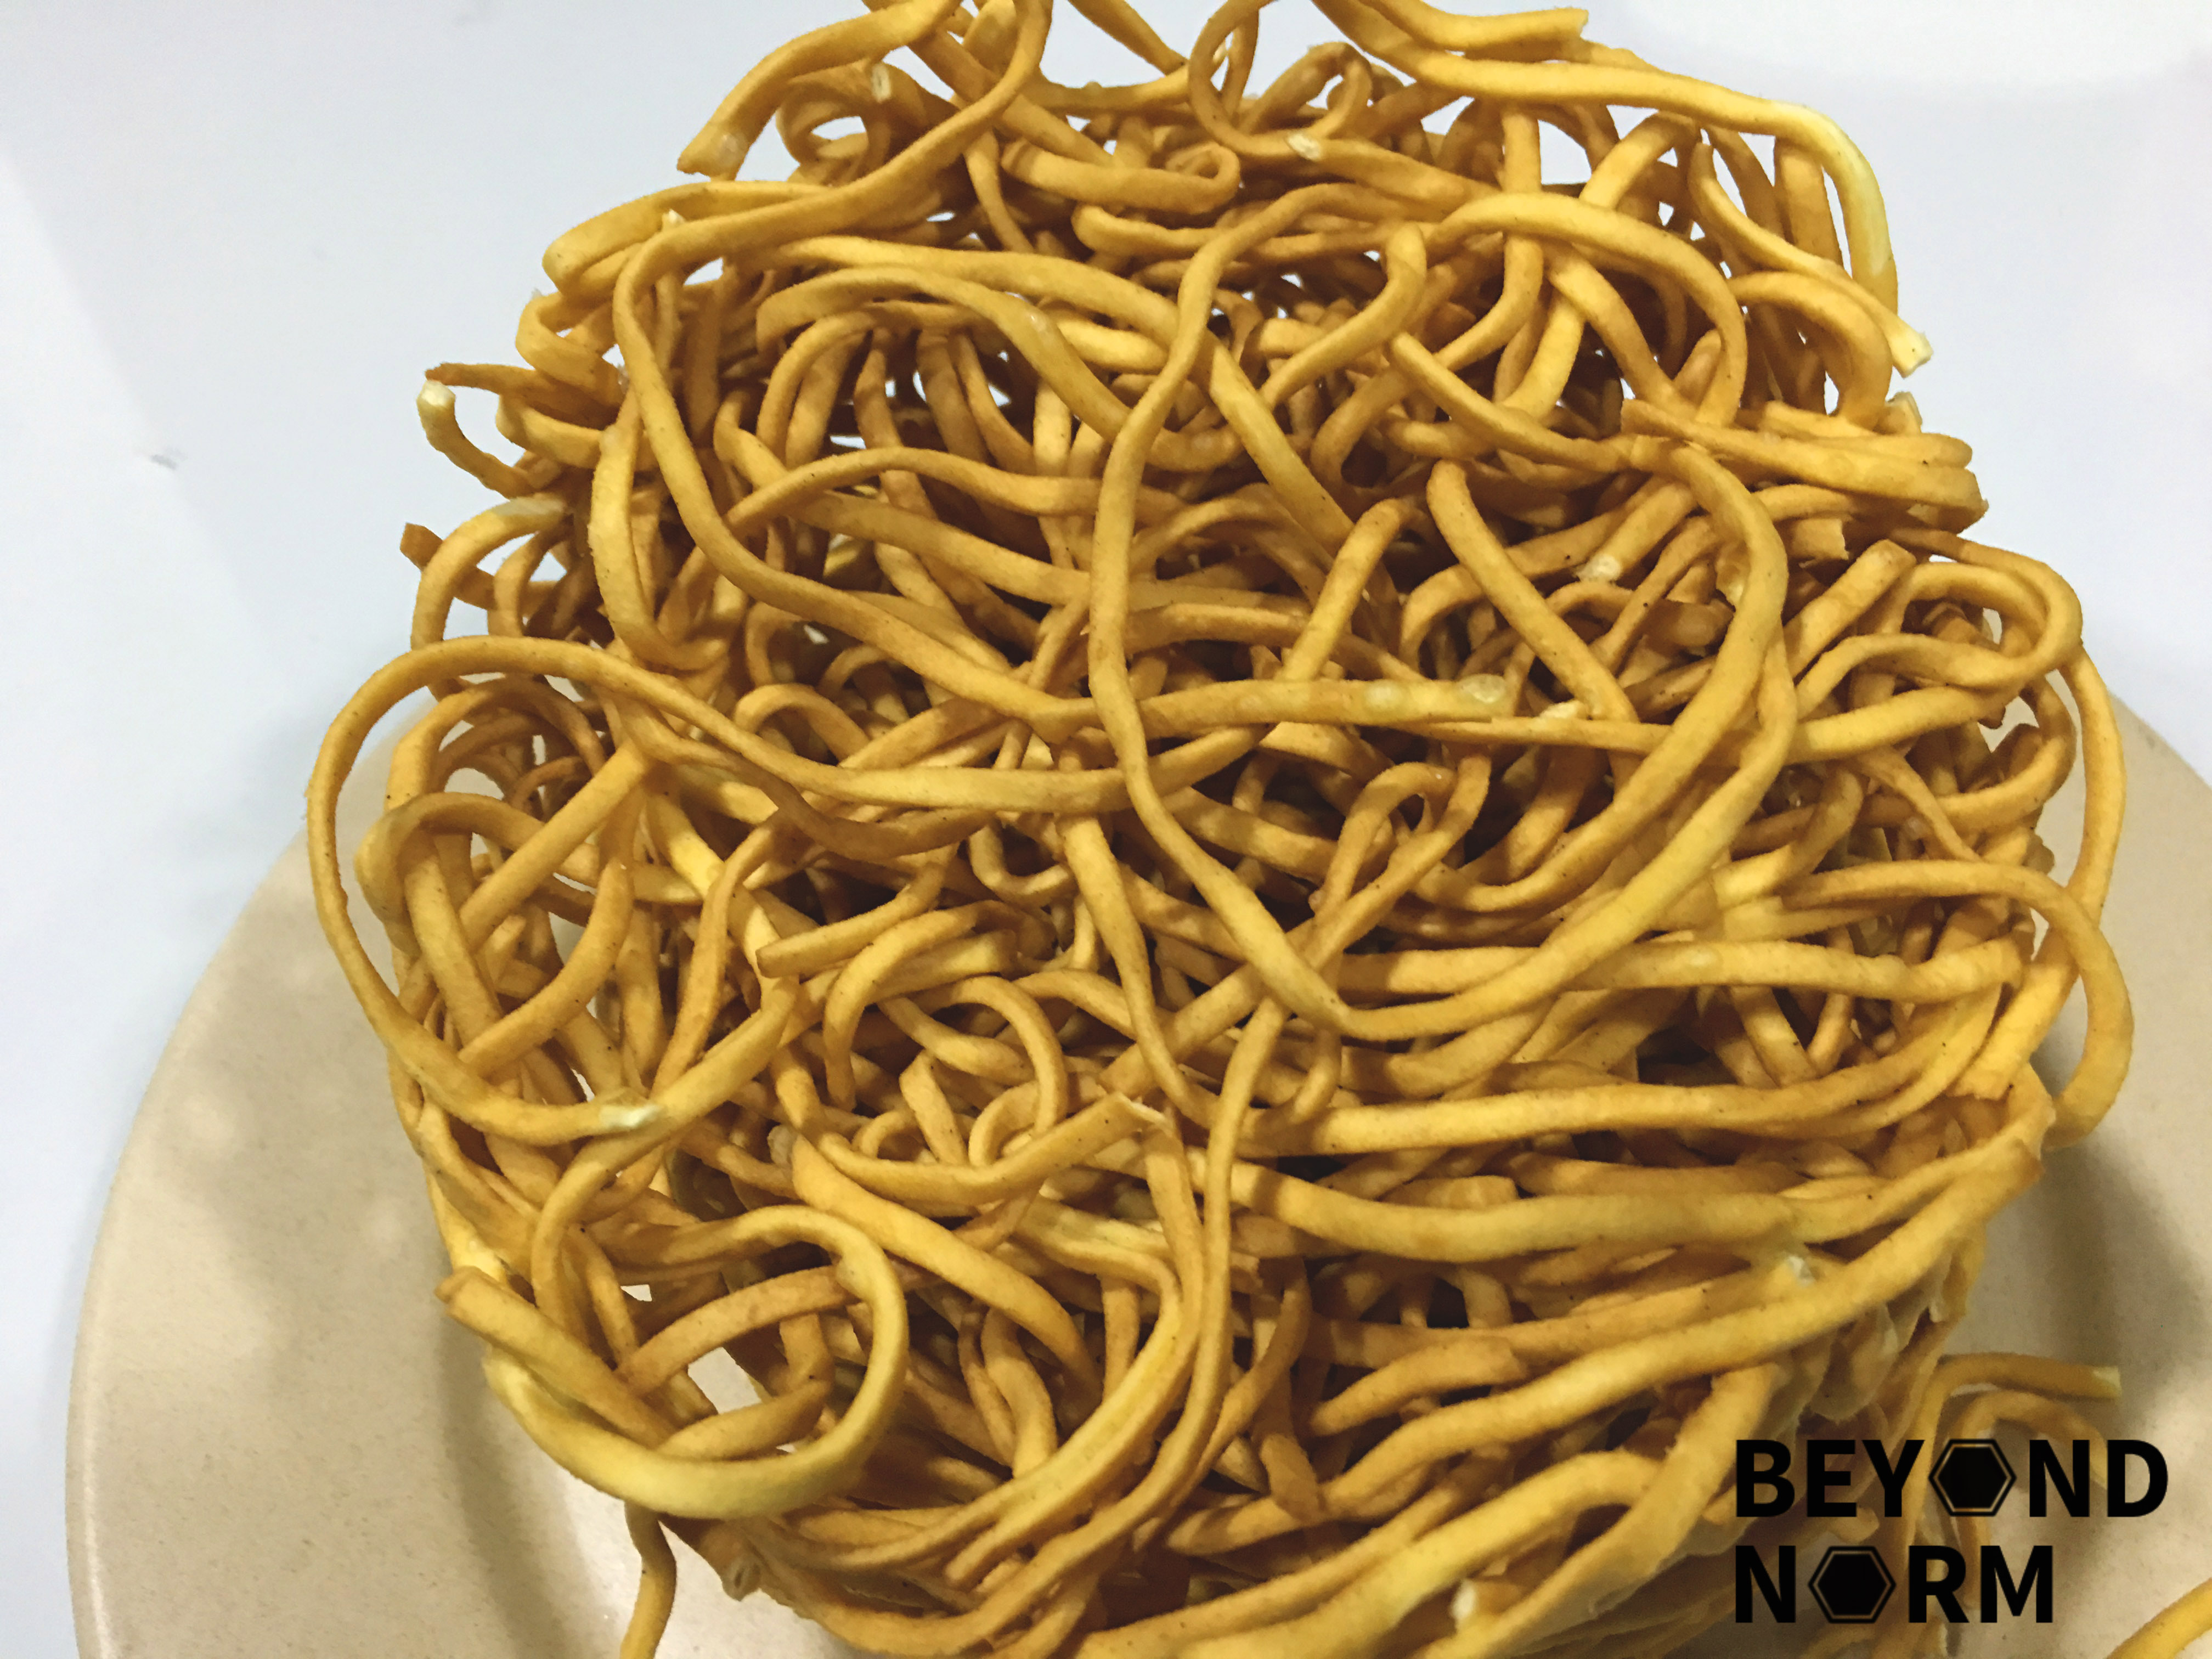 Recipe Braised E Fu Noodles With Shredded Chicken 伊府面 Beyond Norm